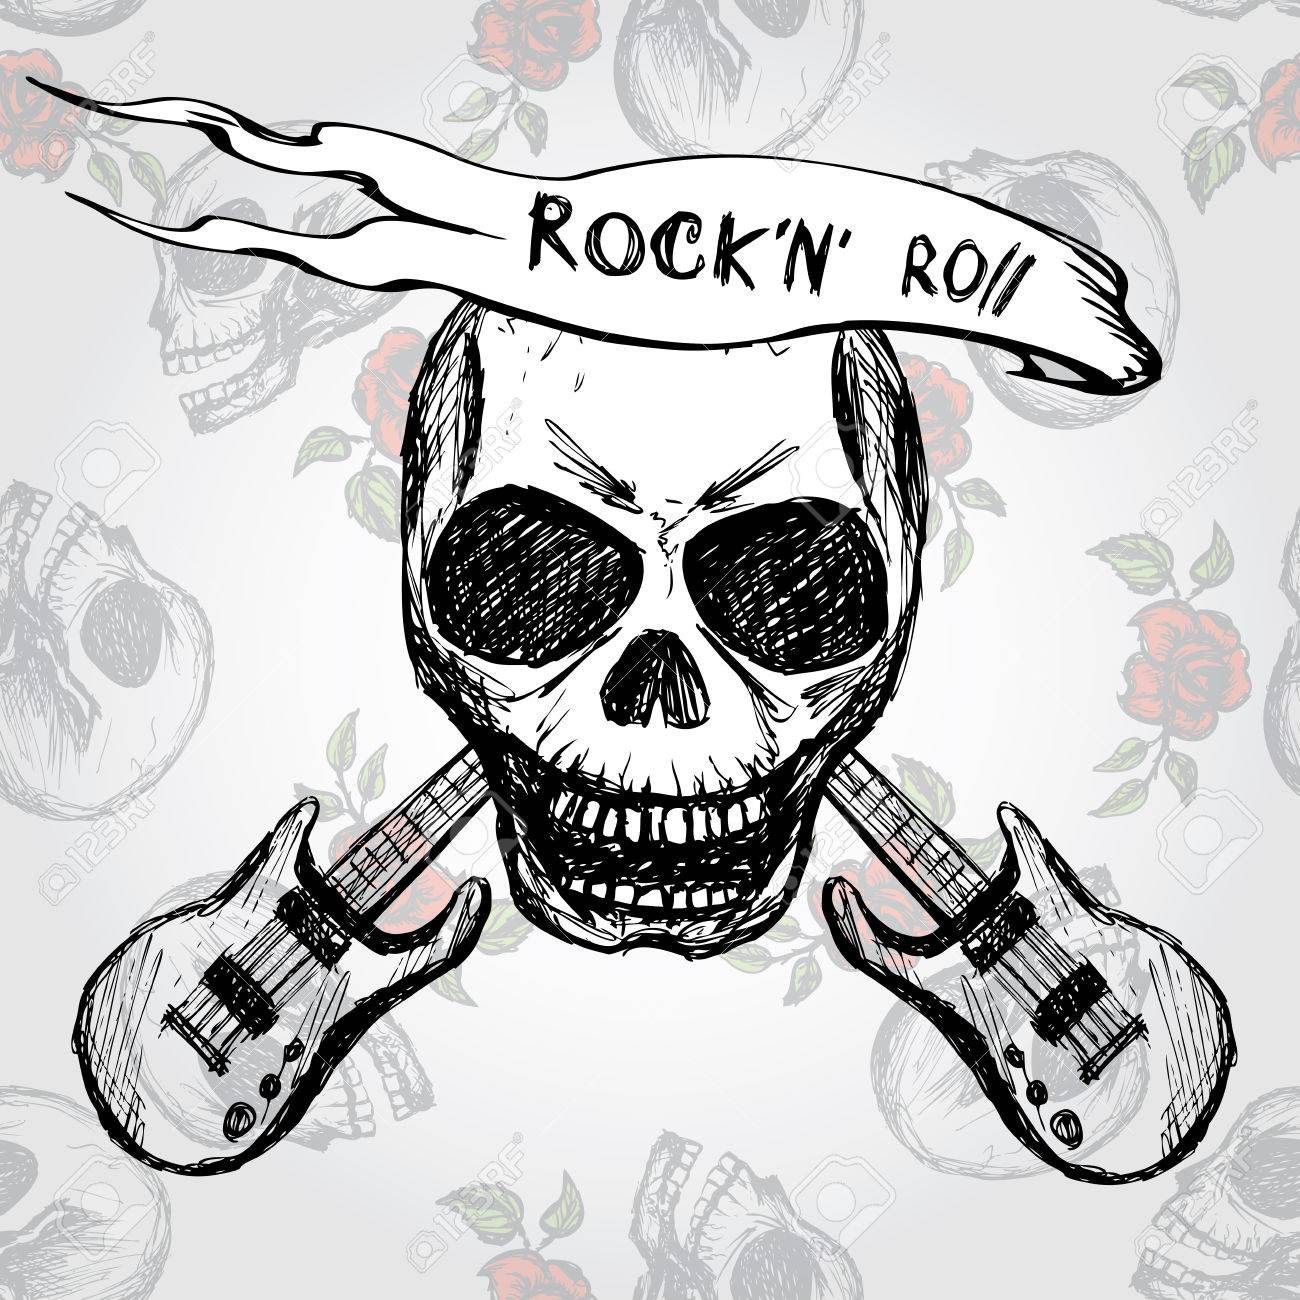 Rock And Roll Crane Guitare Dessin A La Main Vecteur Clip Art